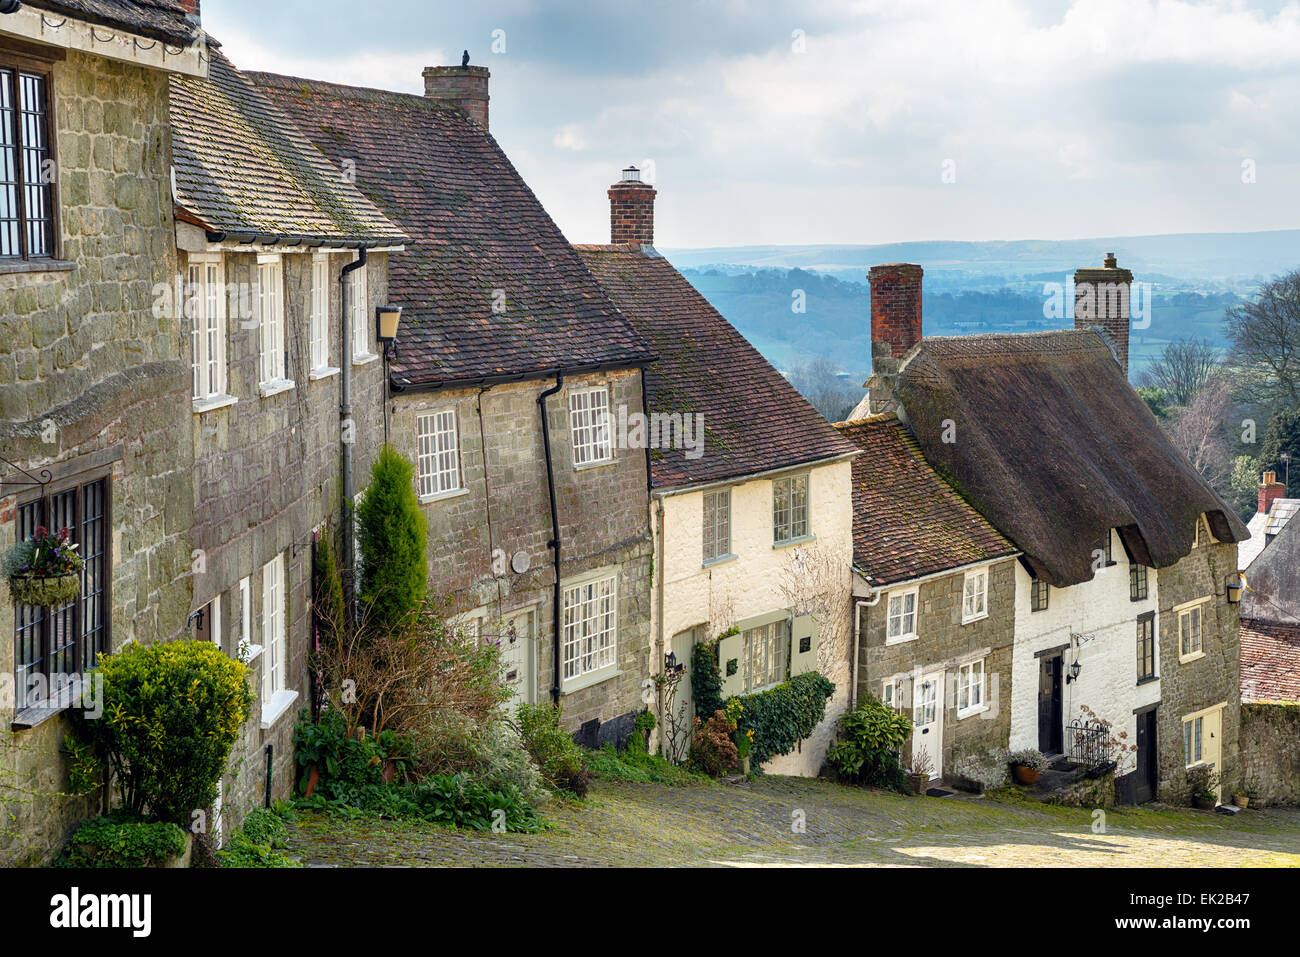 A row of sleepy cottages on a cobbled street at Gold Hill in Shaftesbury, Dorset - Stock Image